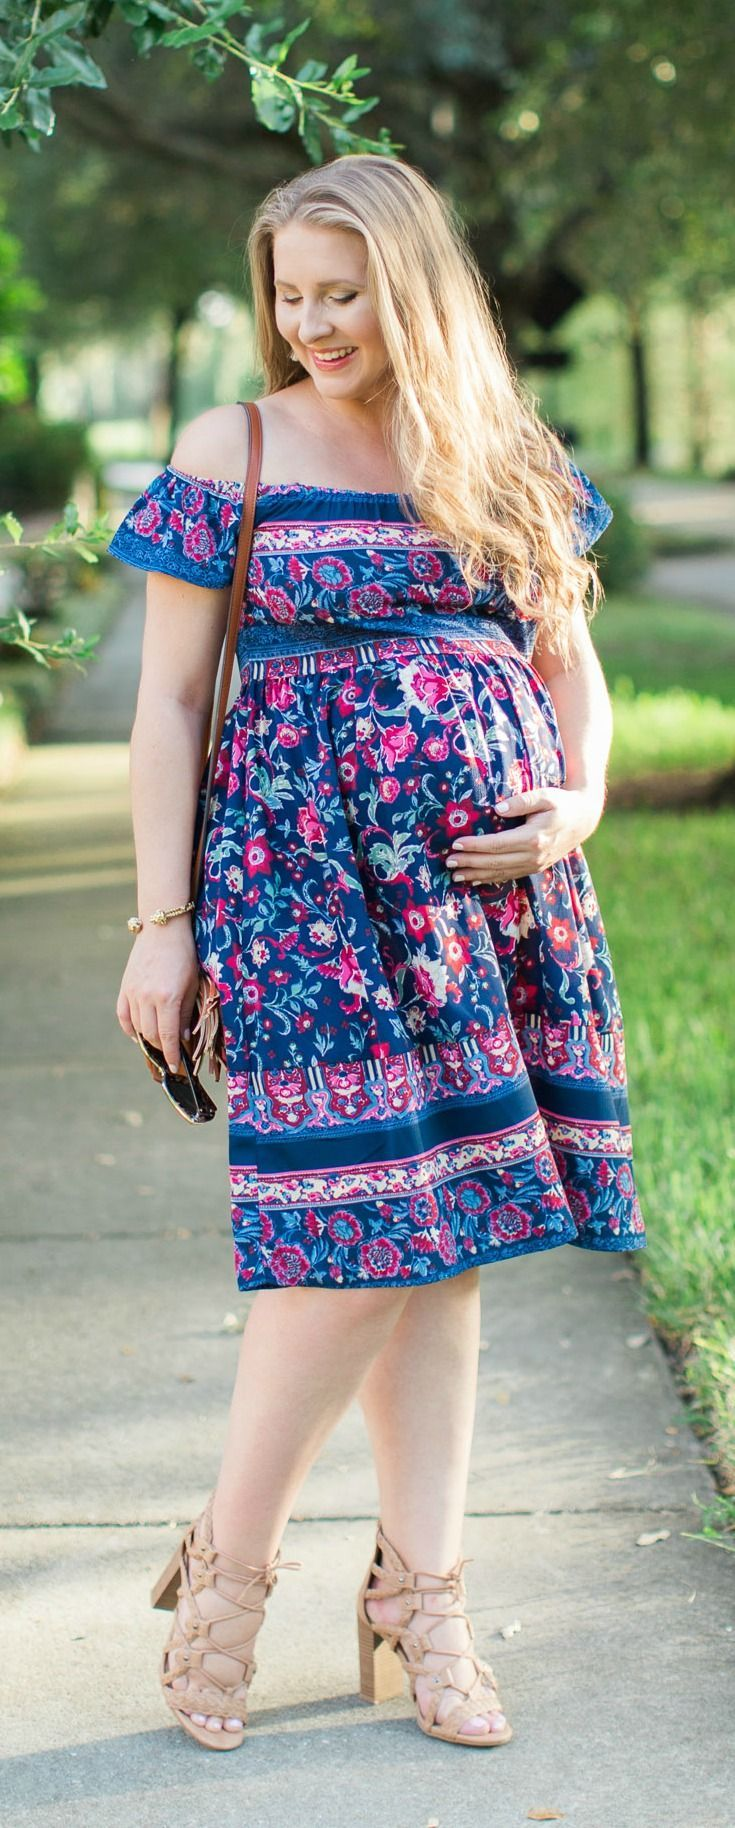 Cute off the shoulder maternity dress under $30 + How to use dry shampoo with my favorite dry shampoo from Cibu for Hair at Hair Cuttery  + a 20% coupon code for Cibu! #MyHCLook #TakeCibuHome sponsored by Hair Cuttery | easy hair tutorial by Orlando, Florida beauty blogger Ashley Brooke Nicholas, cute maternity outfit, affordable maternity style, maternity fashion, 8 months pregnant, 34 weeks outfit idea